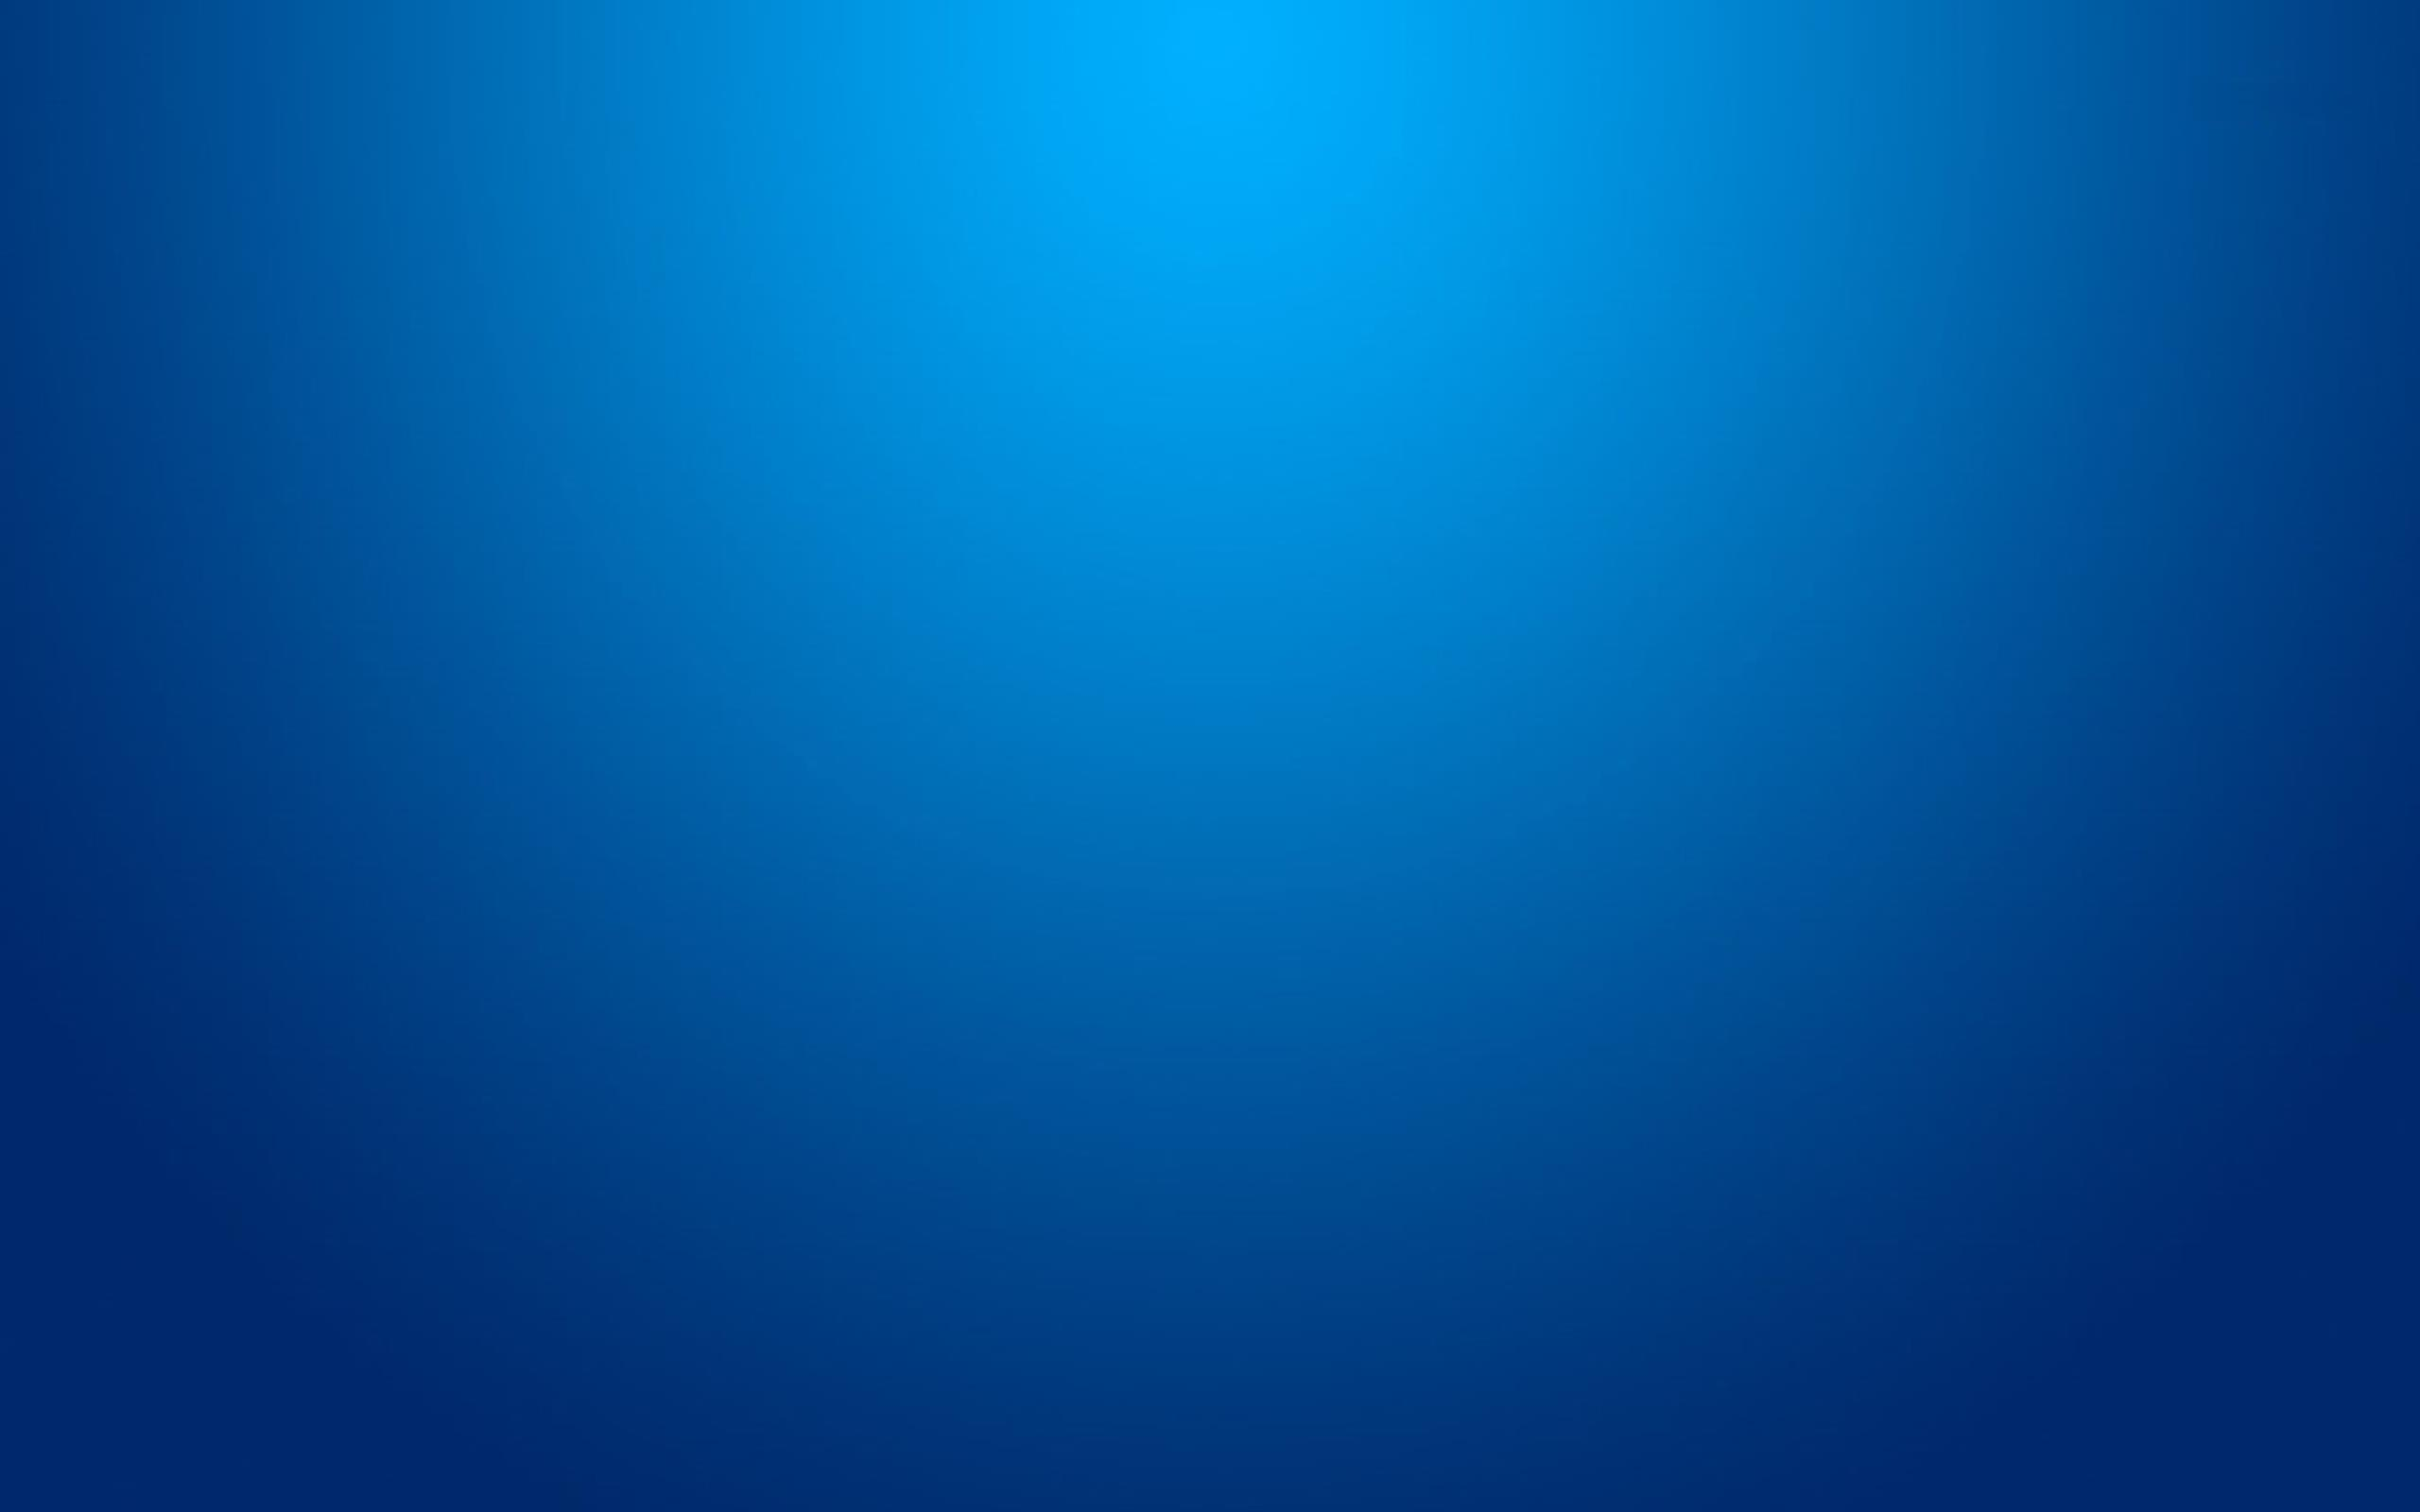 Blue Background Page 1